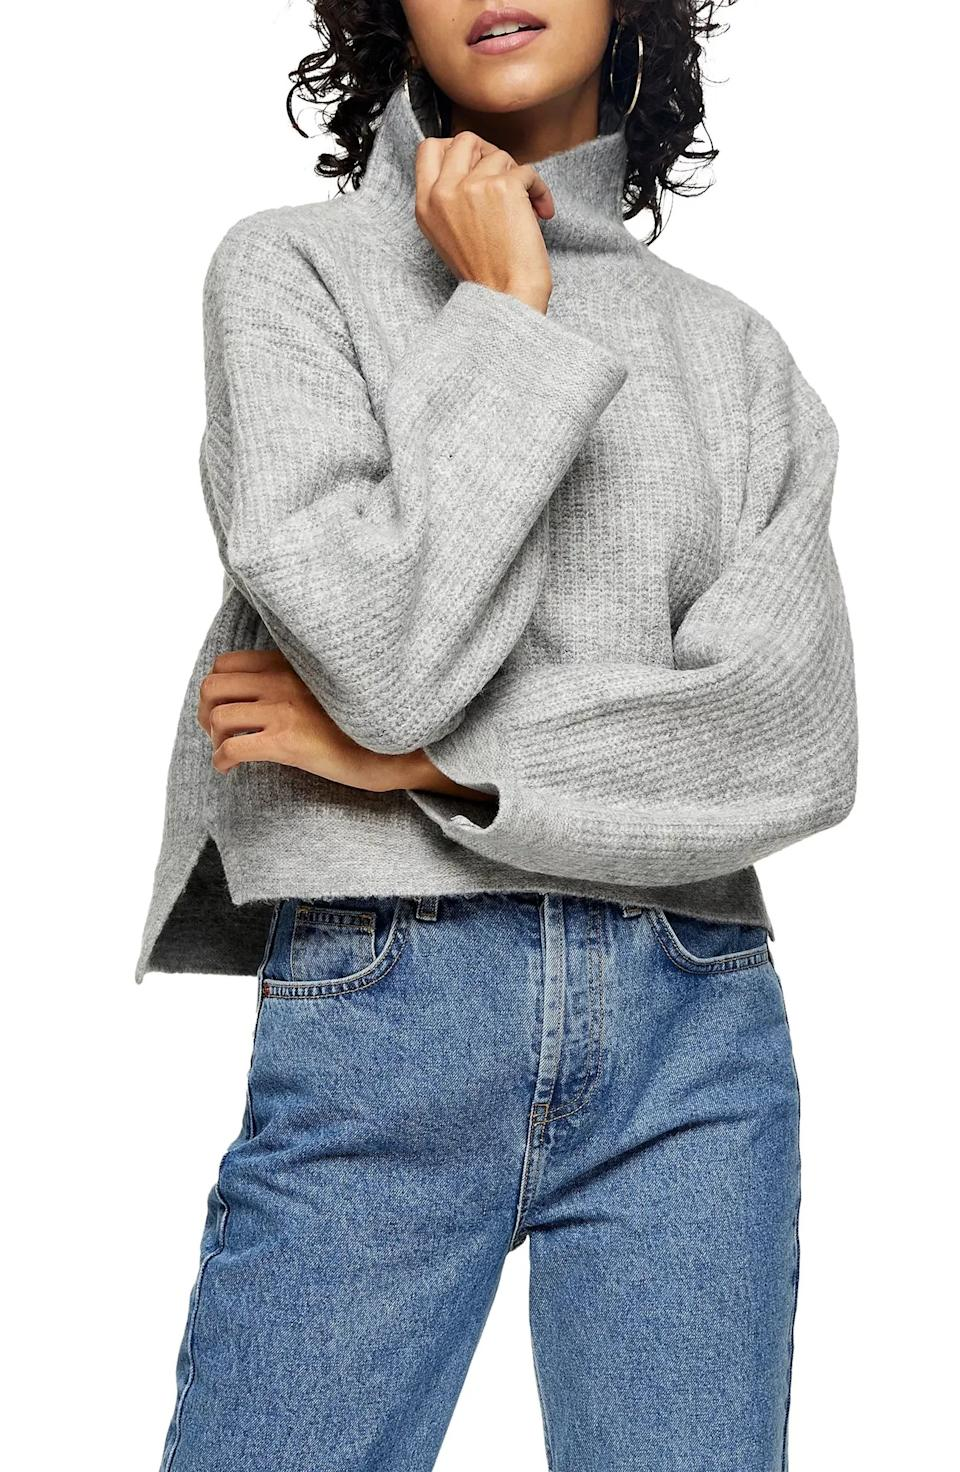 "<a href=""https://fave.co/3633wDn"" target=""_blank"" rel=""noopener noreferrer"">This mock neck sweater</a> is available in sizes XS to XL in two colors. Find it for $60 at <a href=""https://fave.co/3633wDn"" target=""_blank"" rel=""noopener noreferrer"">Nordstrom</a>."